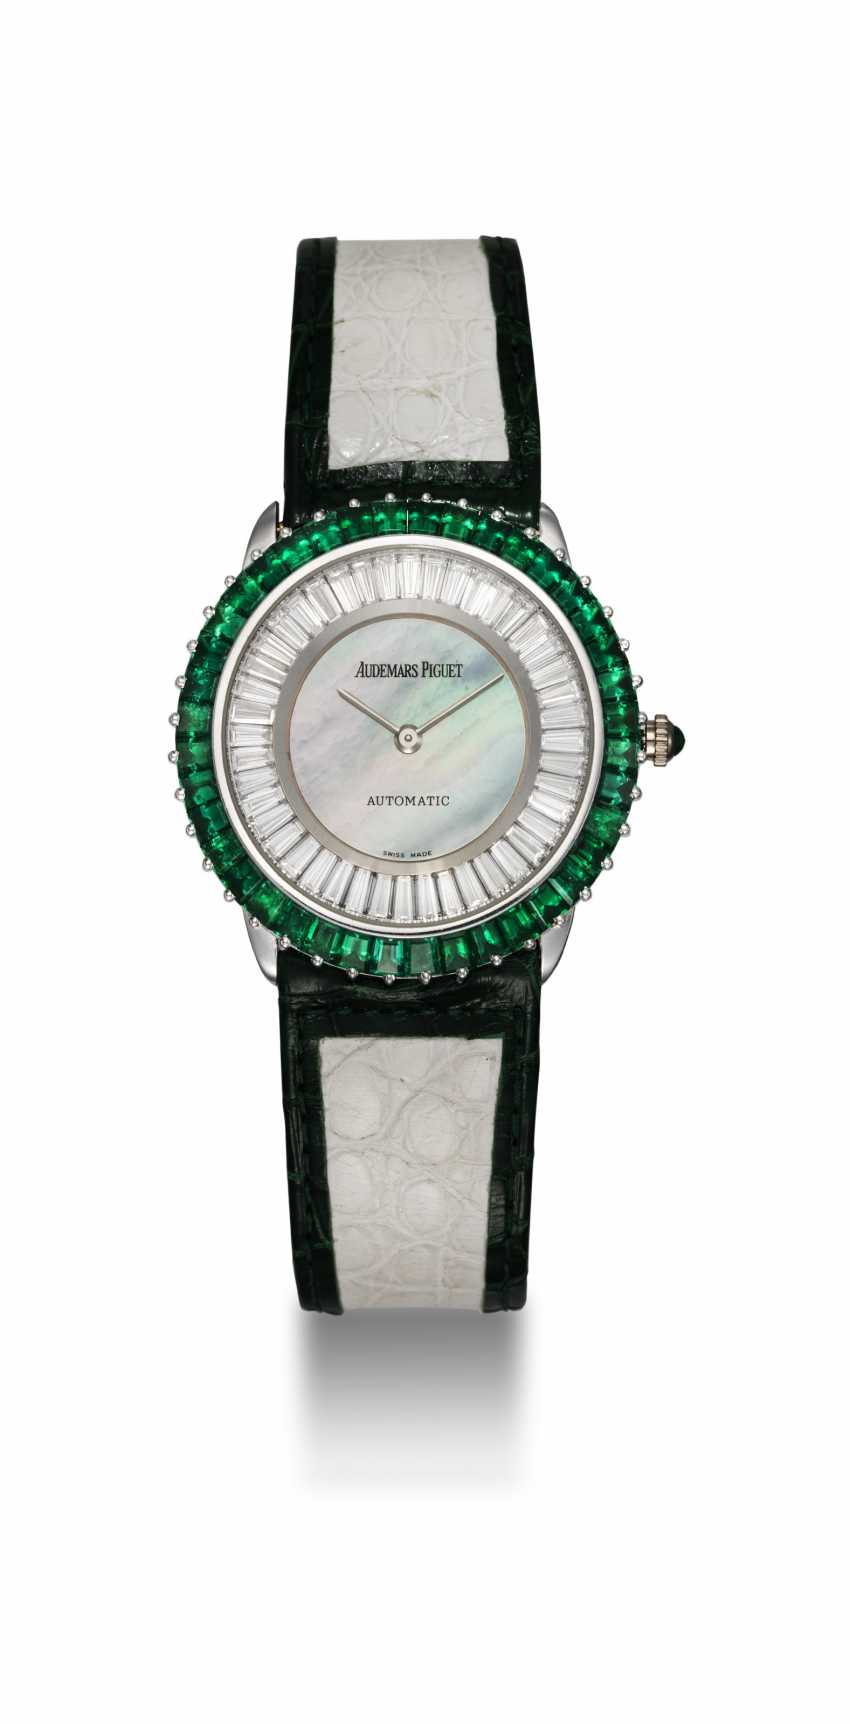 AUDEMARS PIGUET, A GENTS GOLD WRISTWATCH SET WITH EMERALDS, DIAMONDS, AND A MOTHER OF PEARL DIAL - photo 3